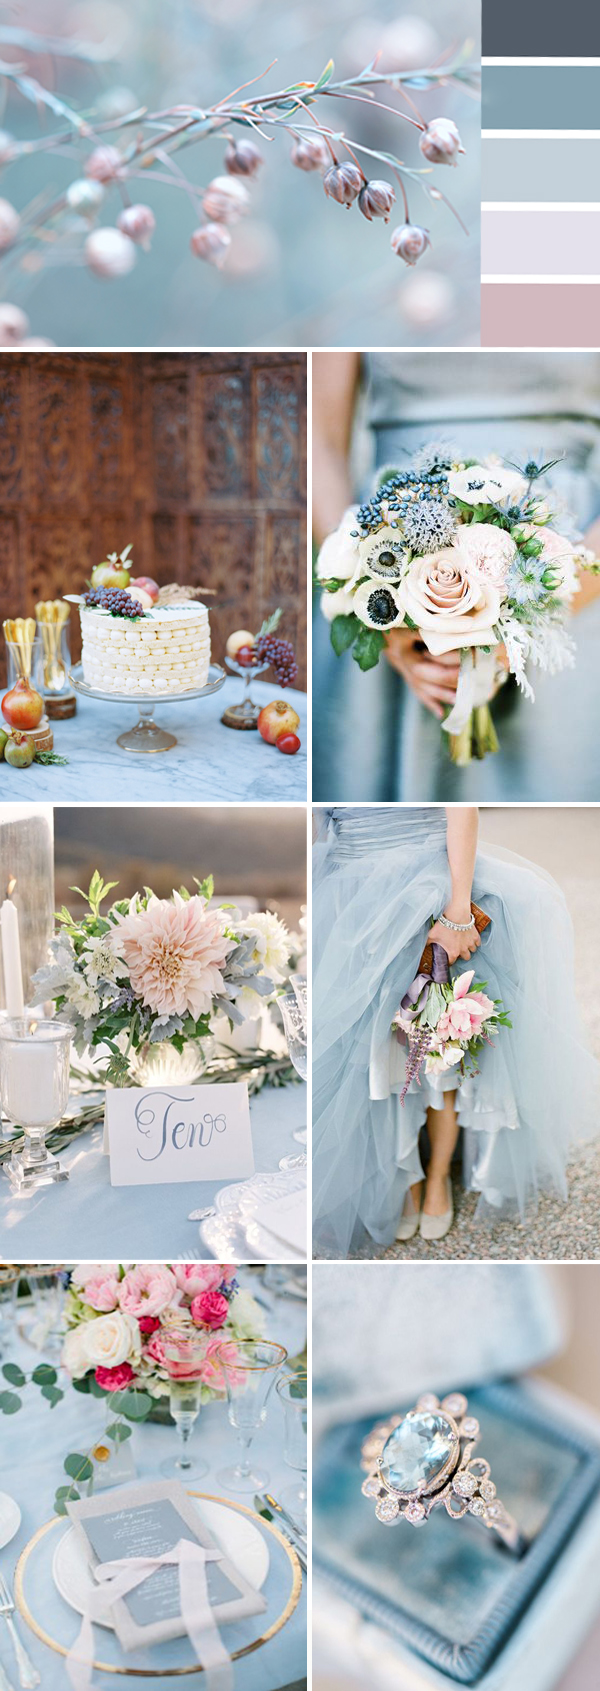 wedding decorations colors top 10 wedding color ideas for 2017 stylish wedd 9095